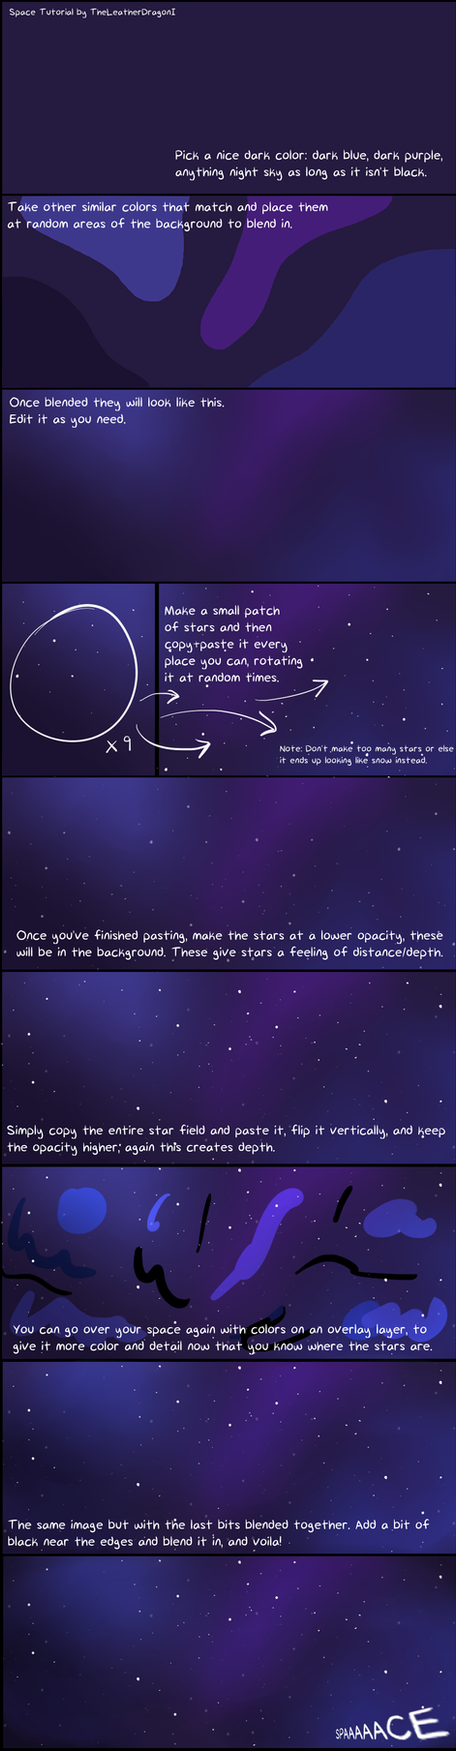 Space tutorial by theleatherdragoni on deviantart for Space tutorial